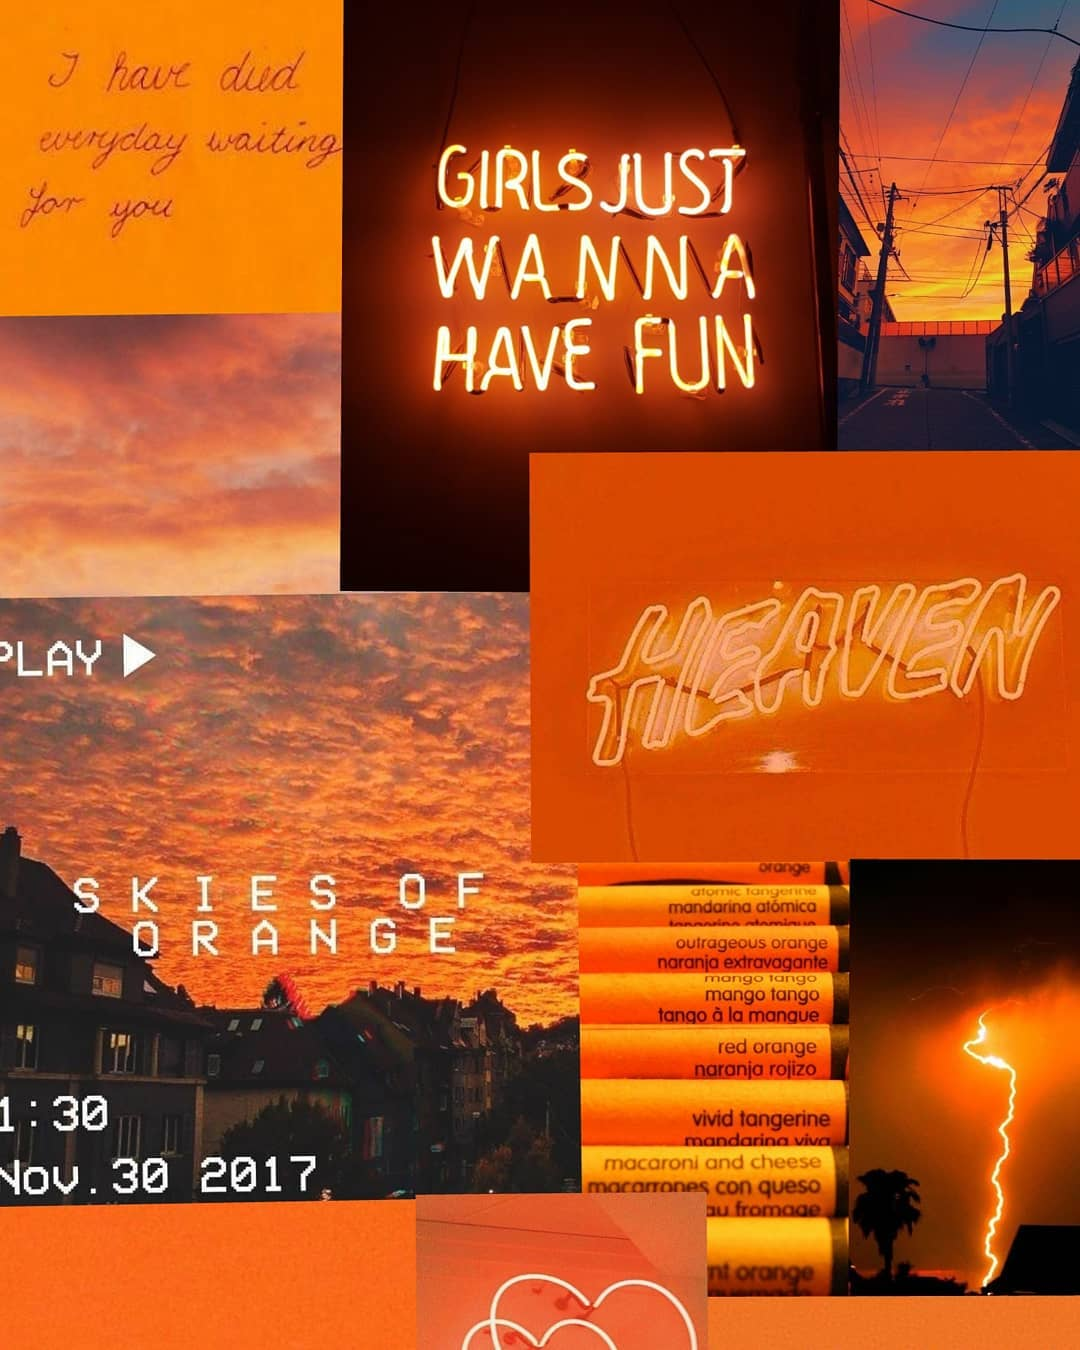 orangecollage • Browse image about orangecollage at Instagram